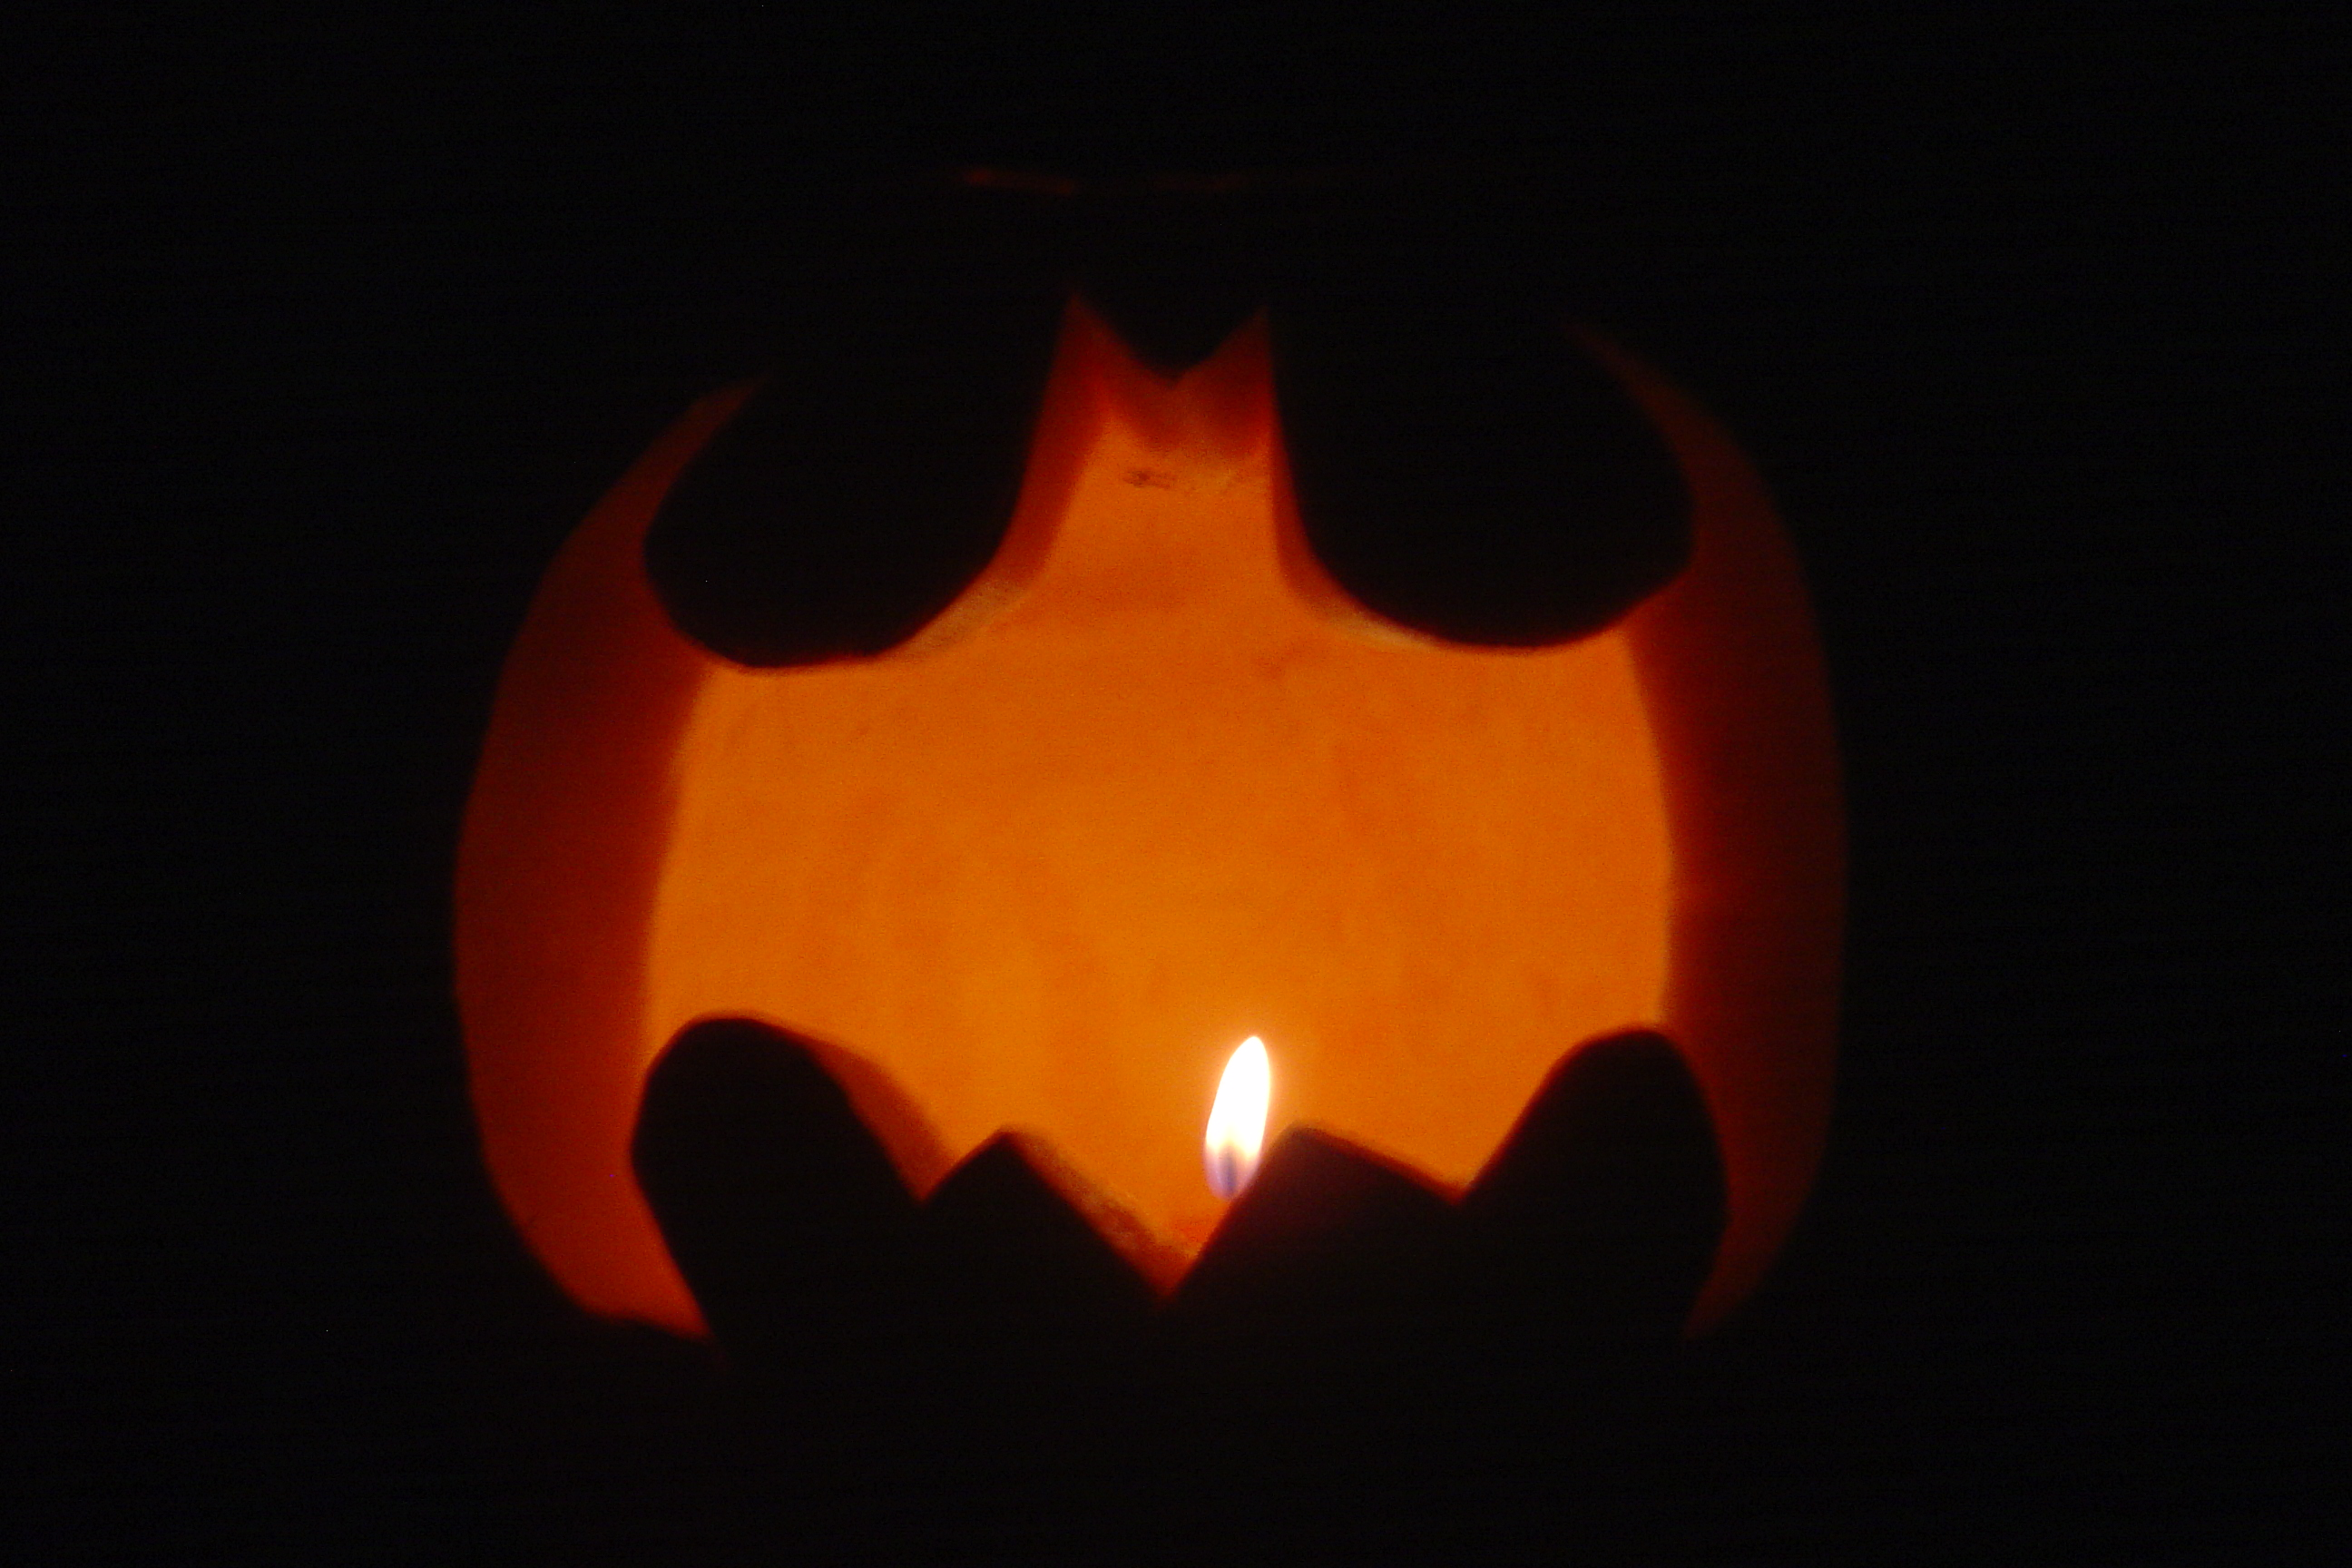 Paul and Carrie's pumpkin (they did theirs freehand and it turned out well!)